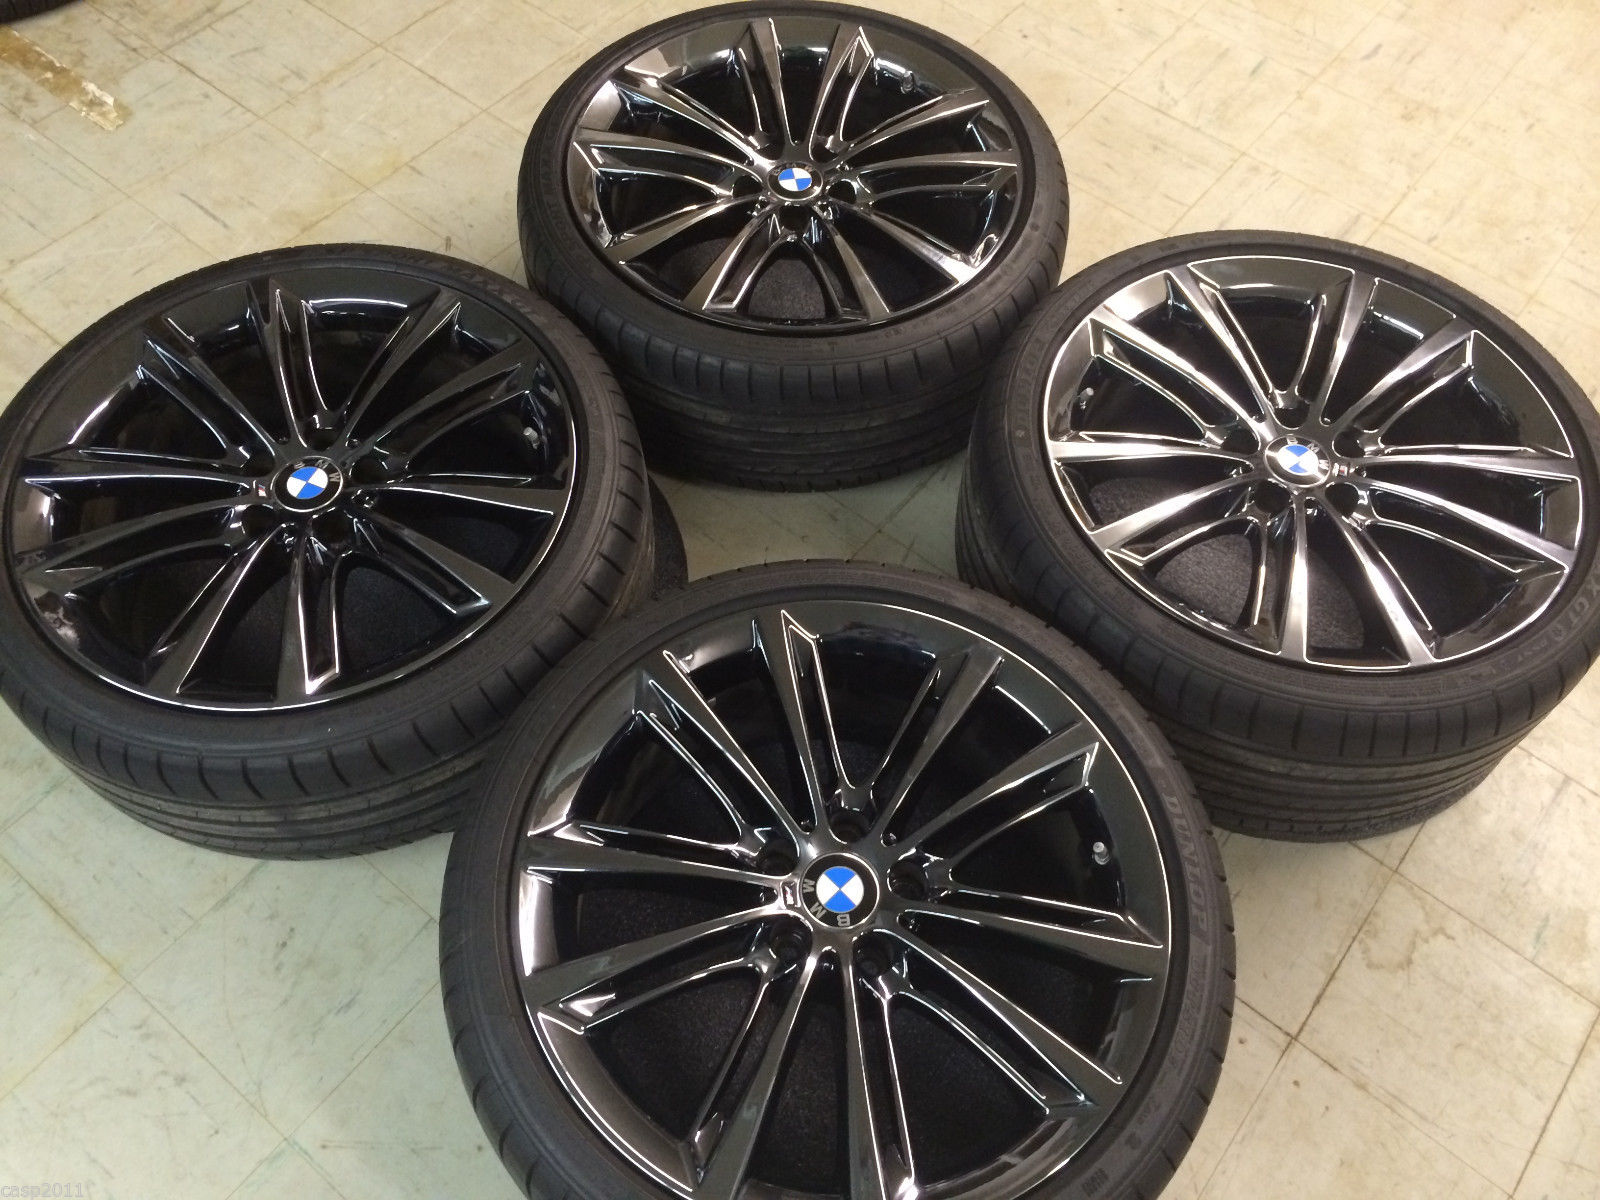 for mint attachment wheels pss michelin attached showthread tires forums oem images fs tpms bmw sale